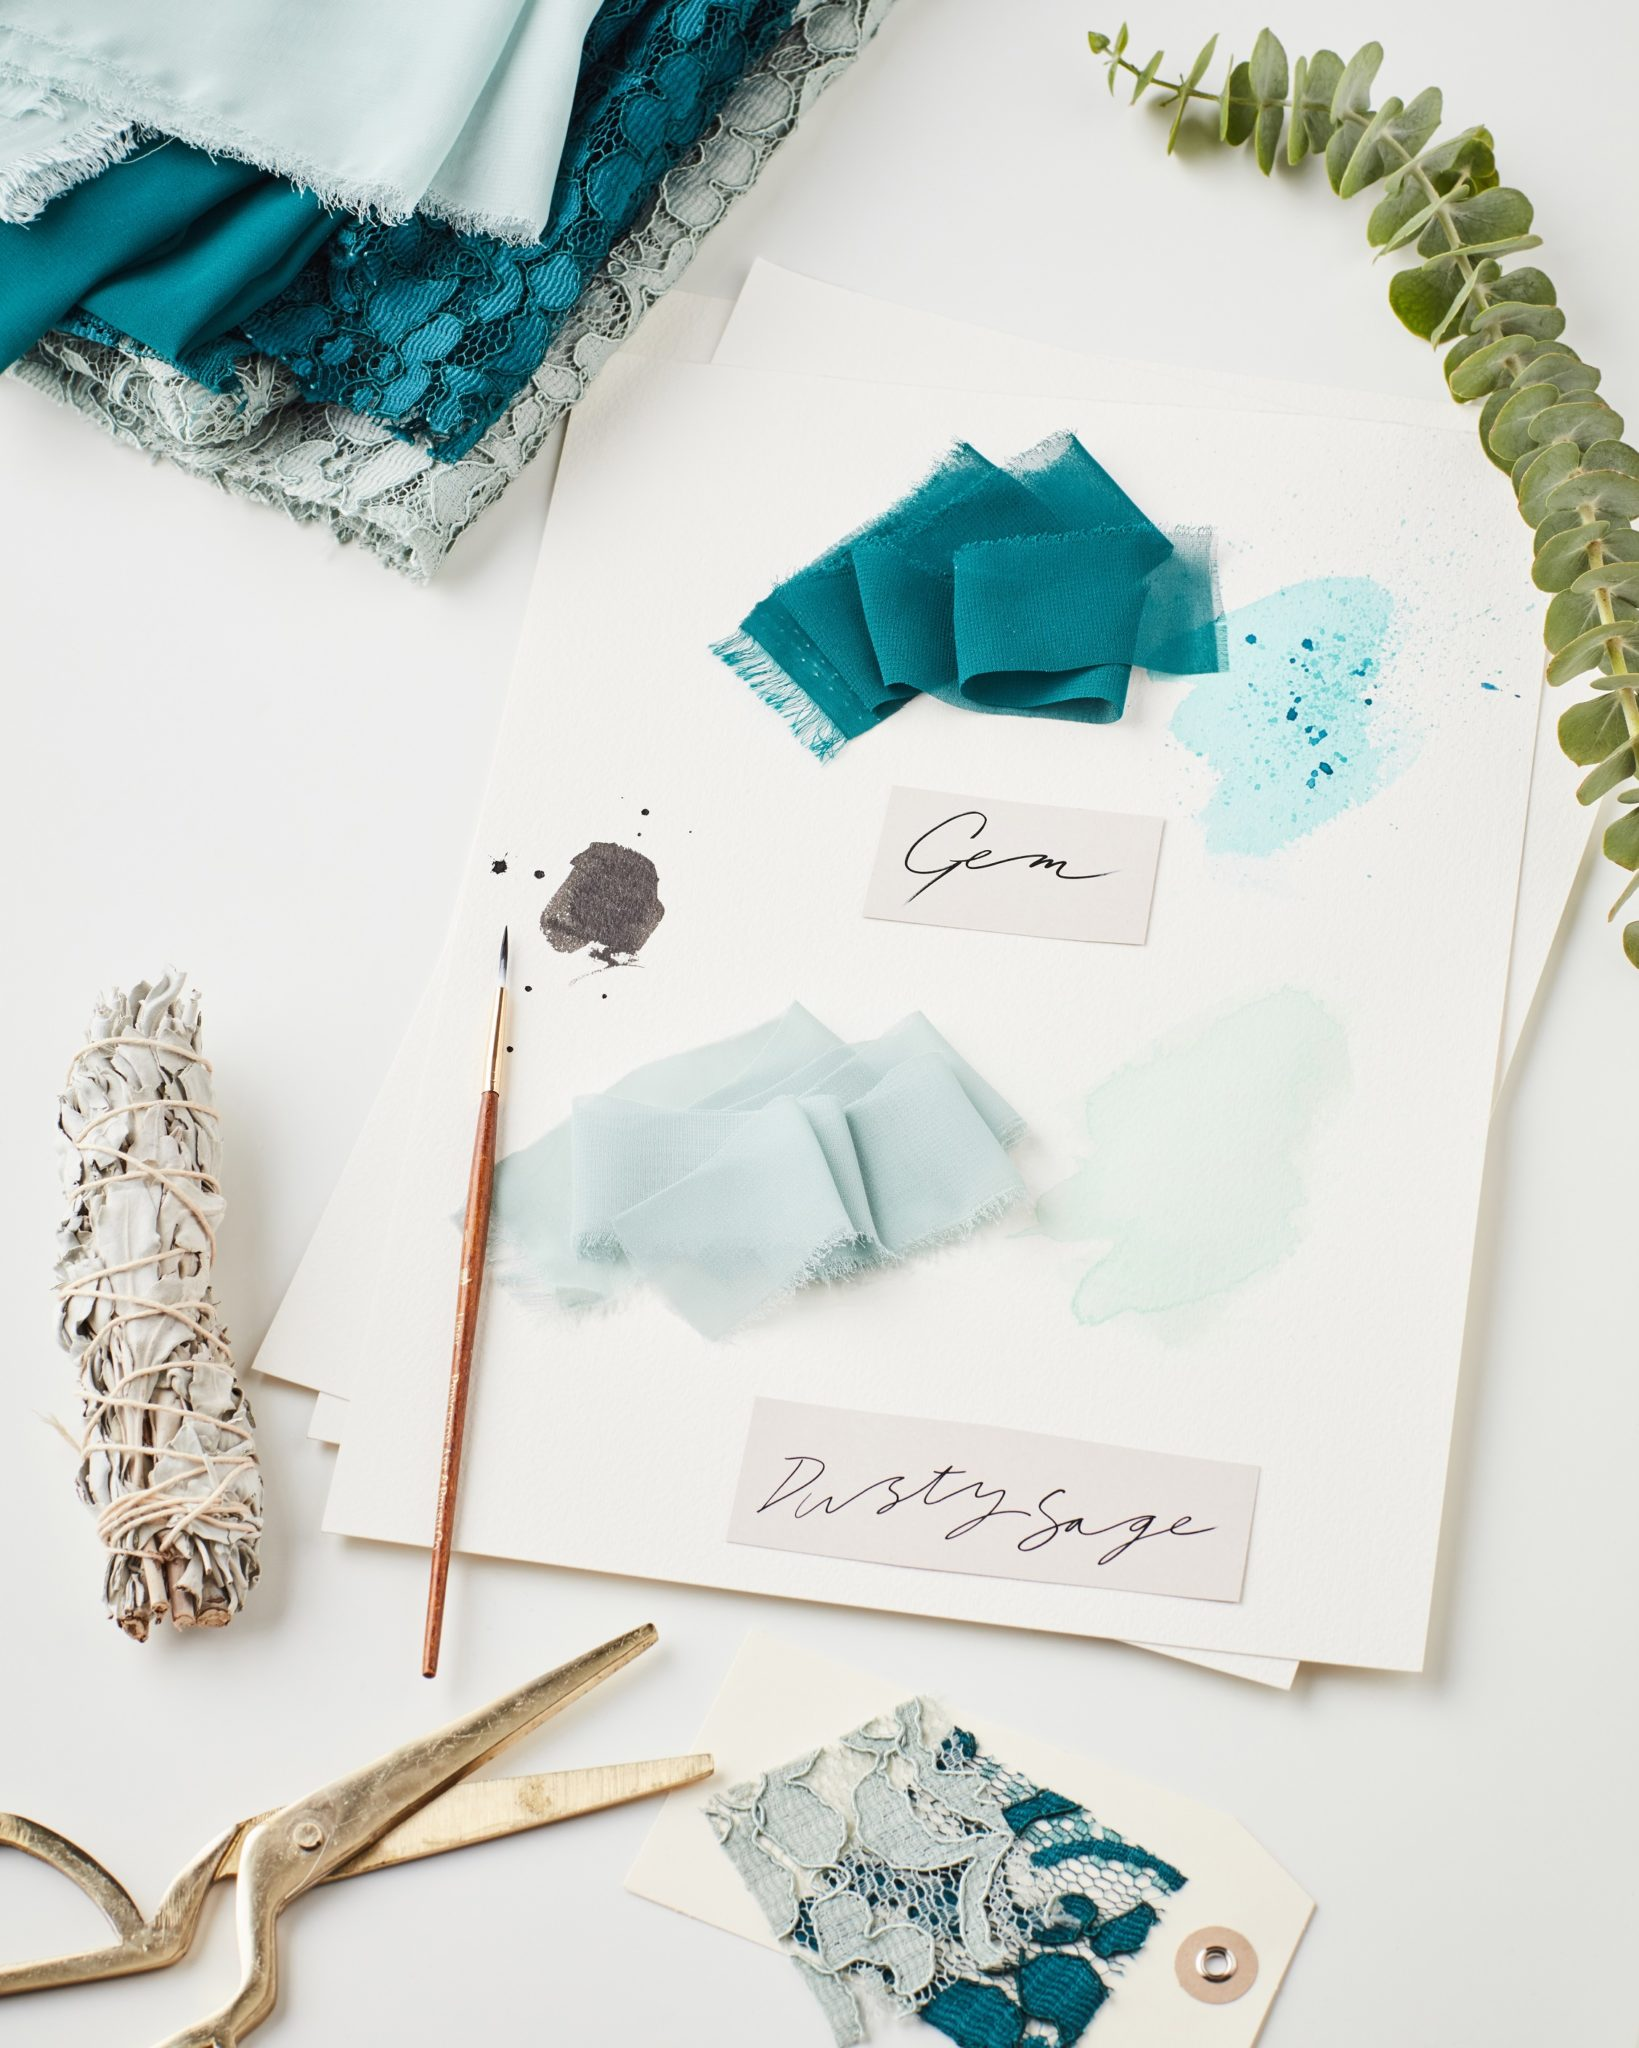 Green bridesmaid color swatches on design table